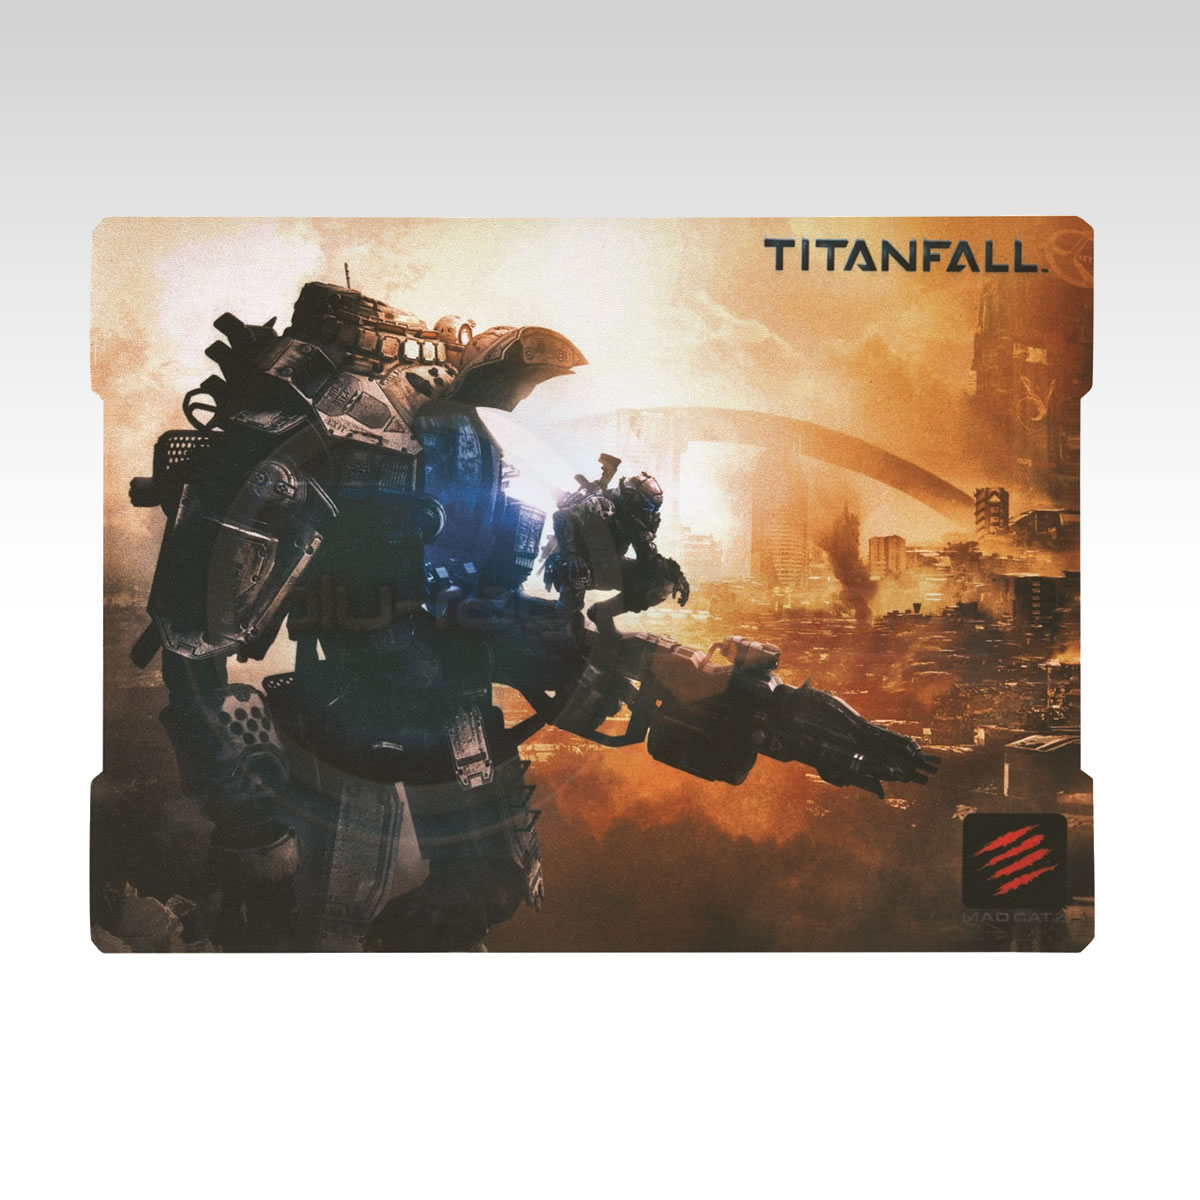 MAD CATZ TITANFALL GLIDE 3 GAMING SURFACE (PC)